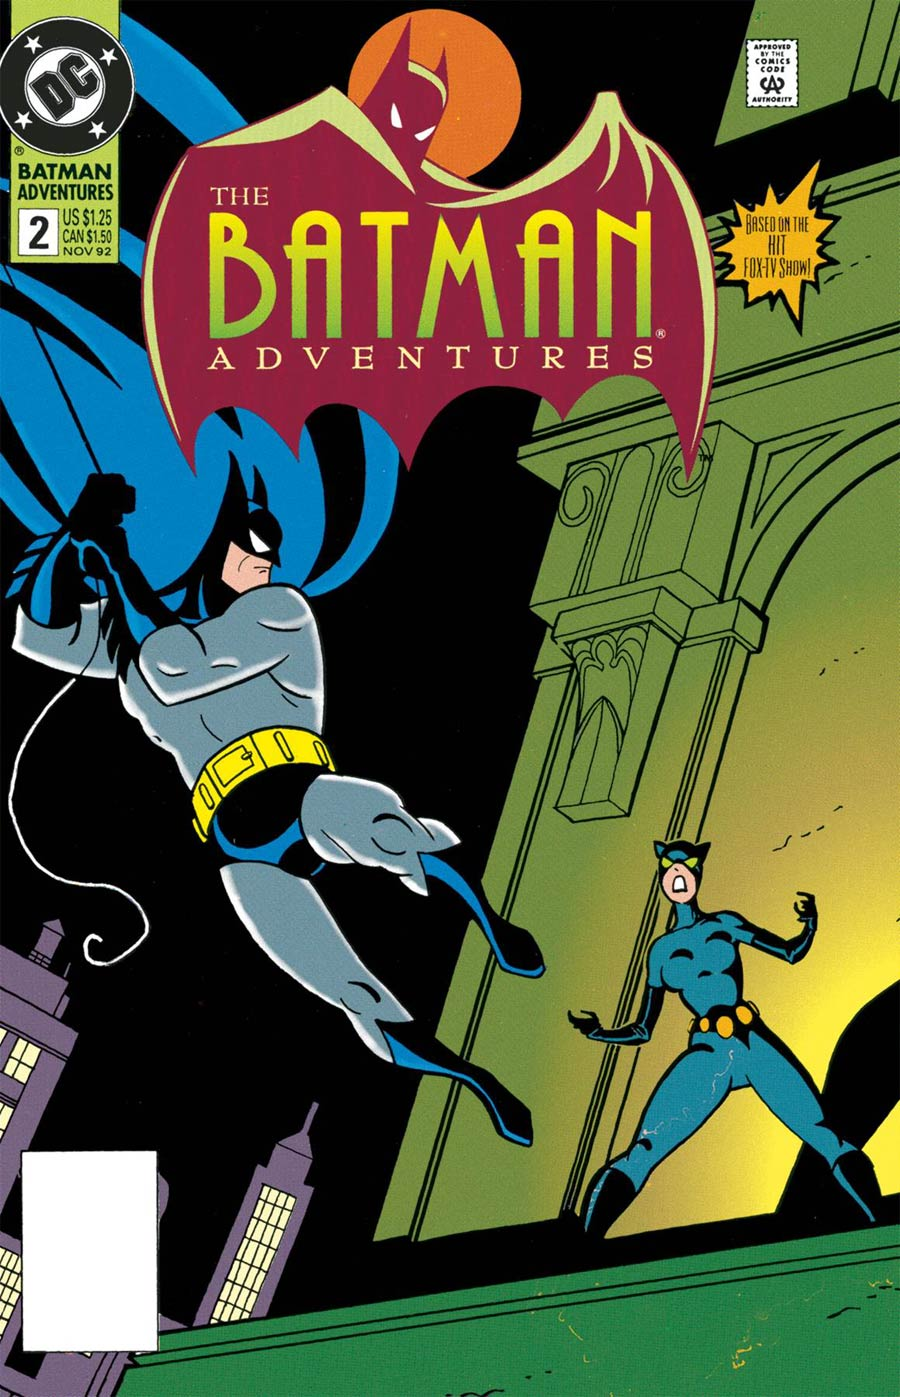 DC Classics: Batman Adventures #2 (2020)